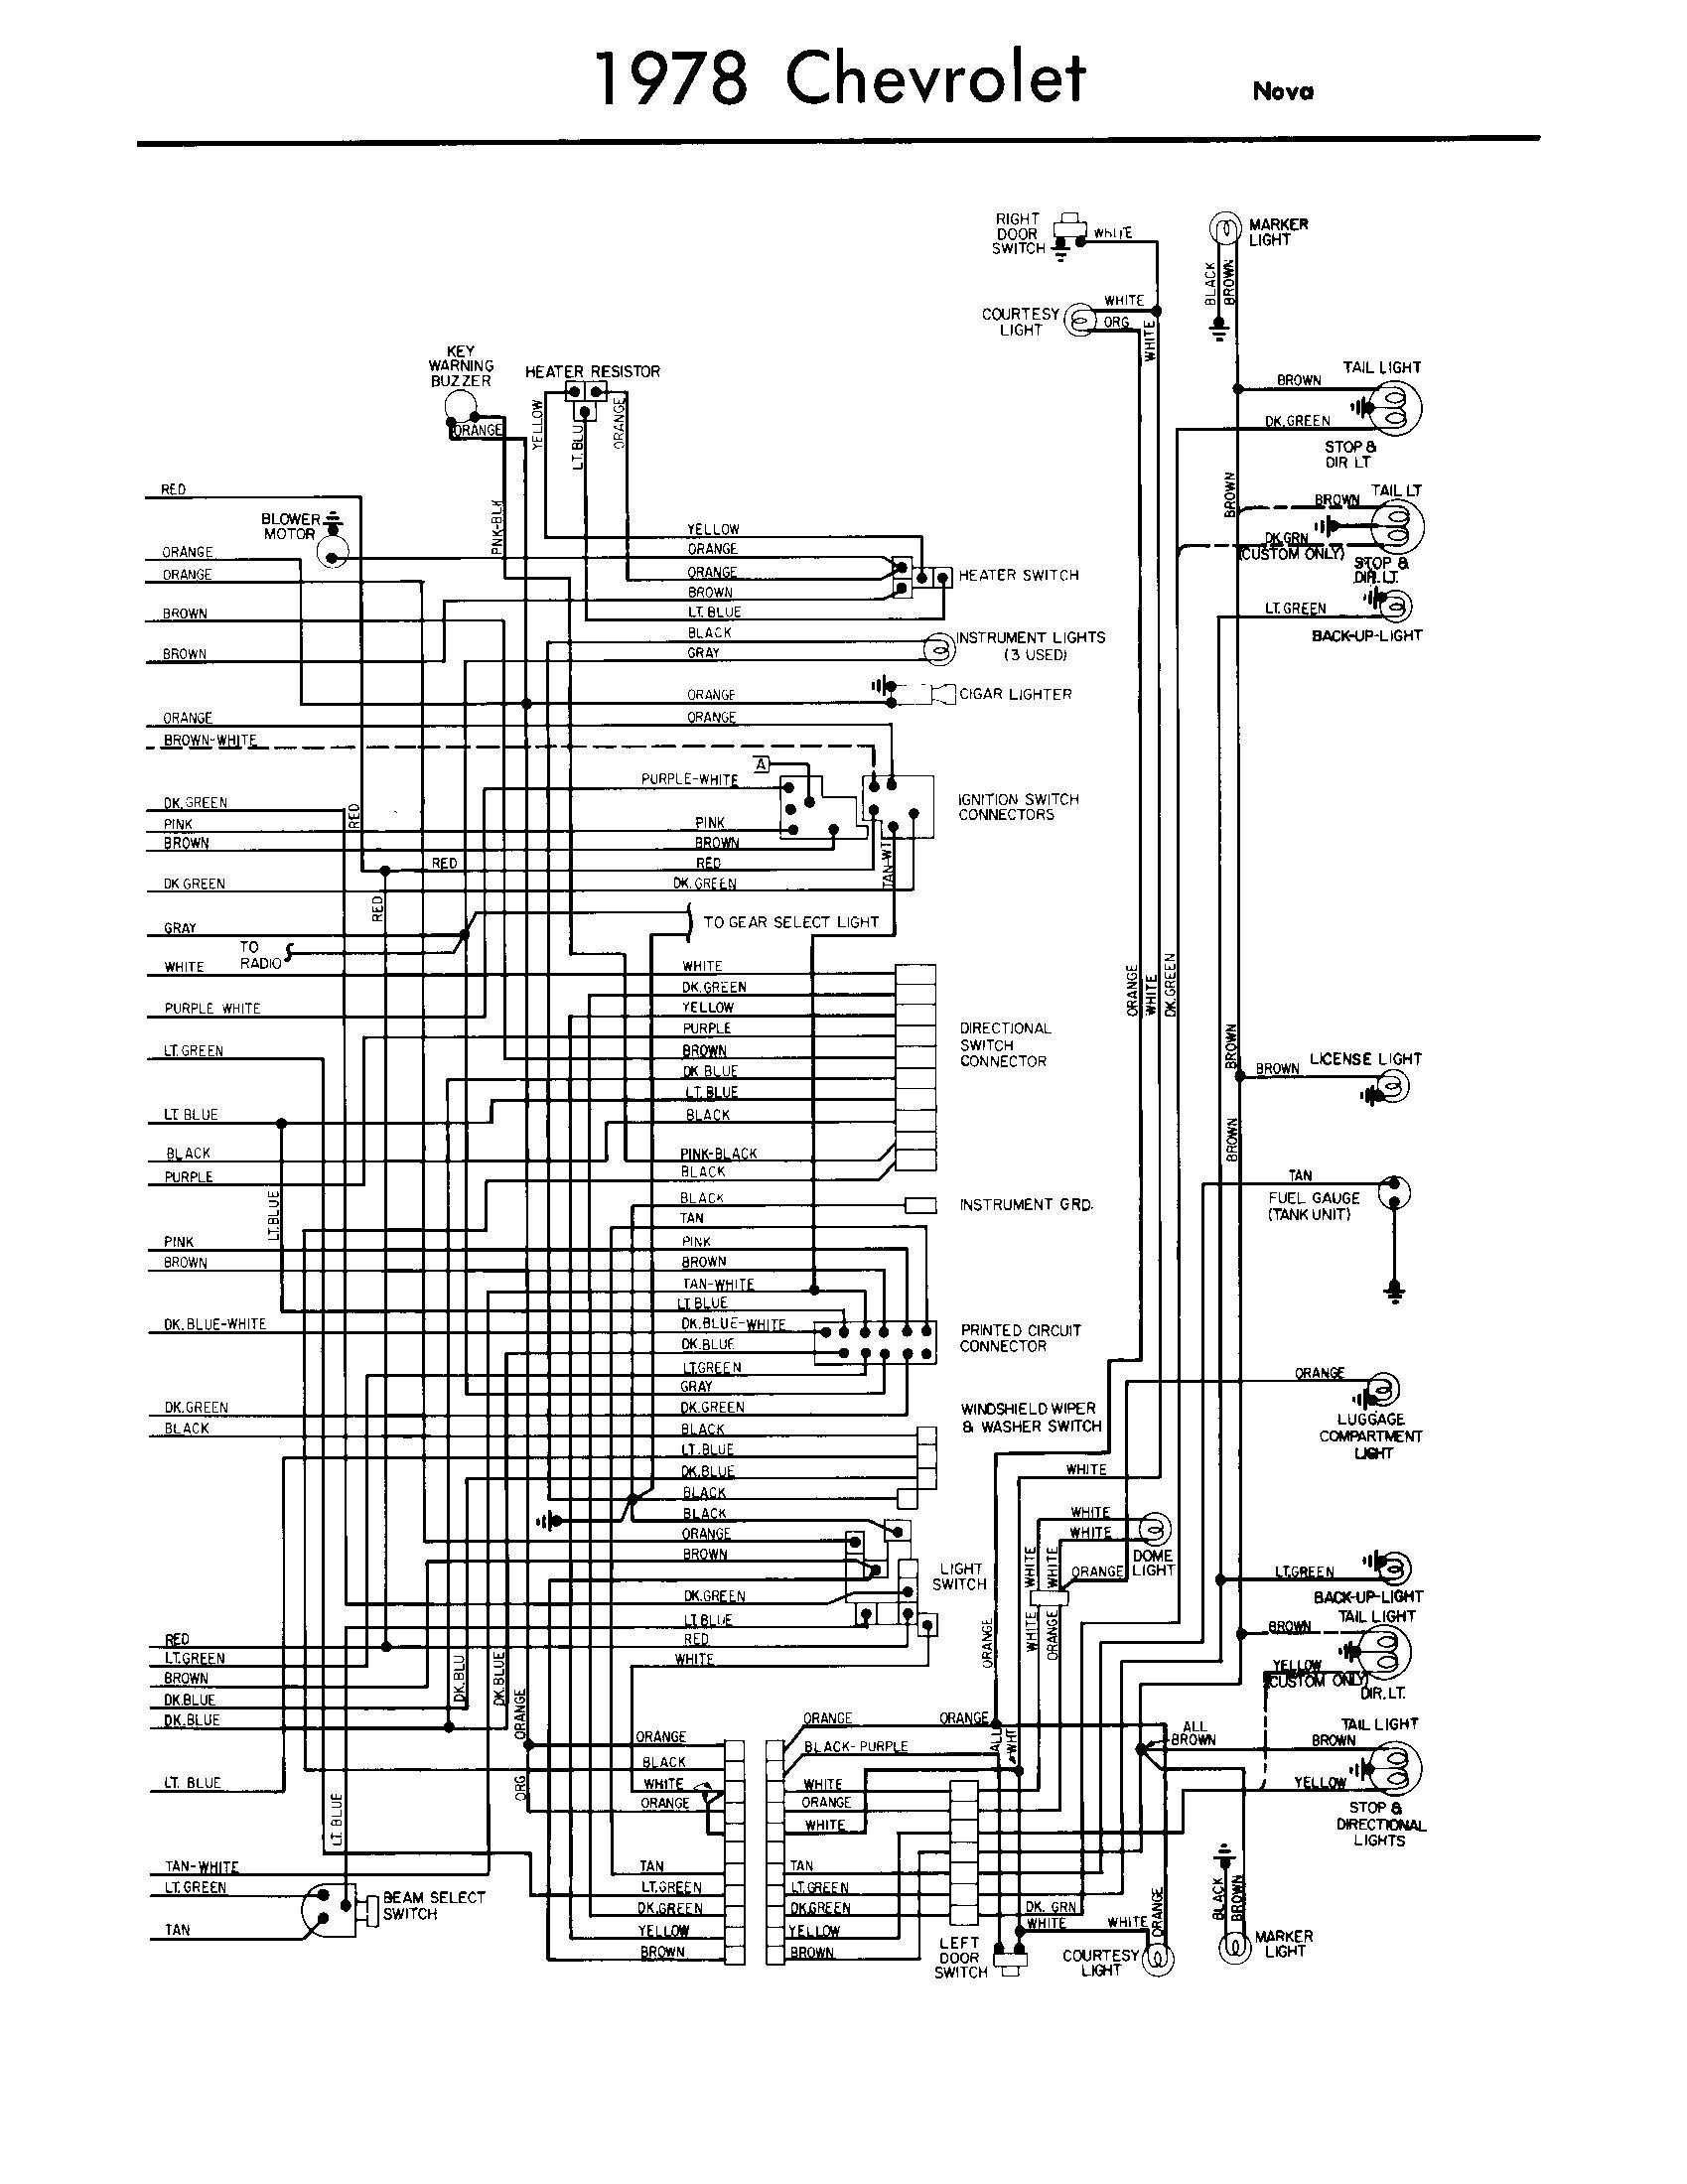 1957 dodge pickup truck diagram wire data schema u2022 rh frana co